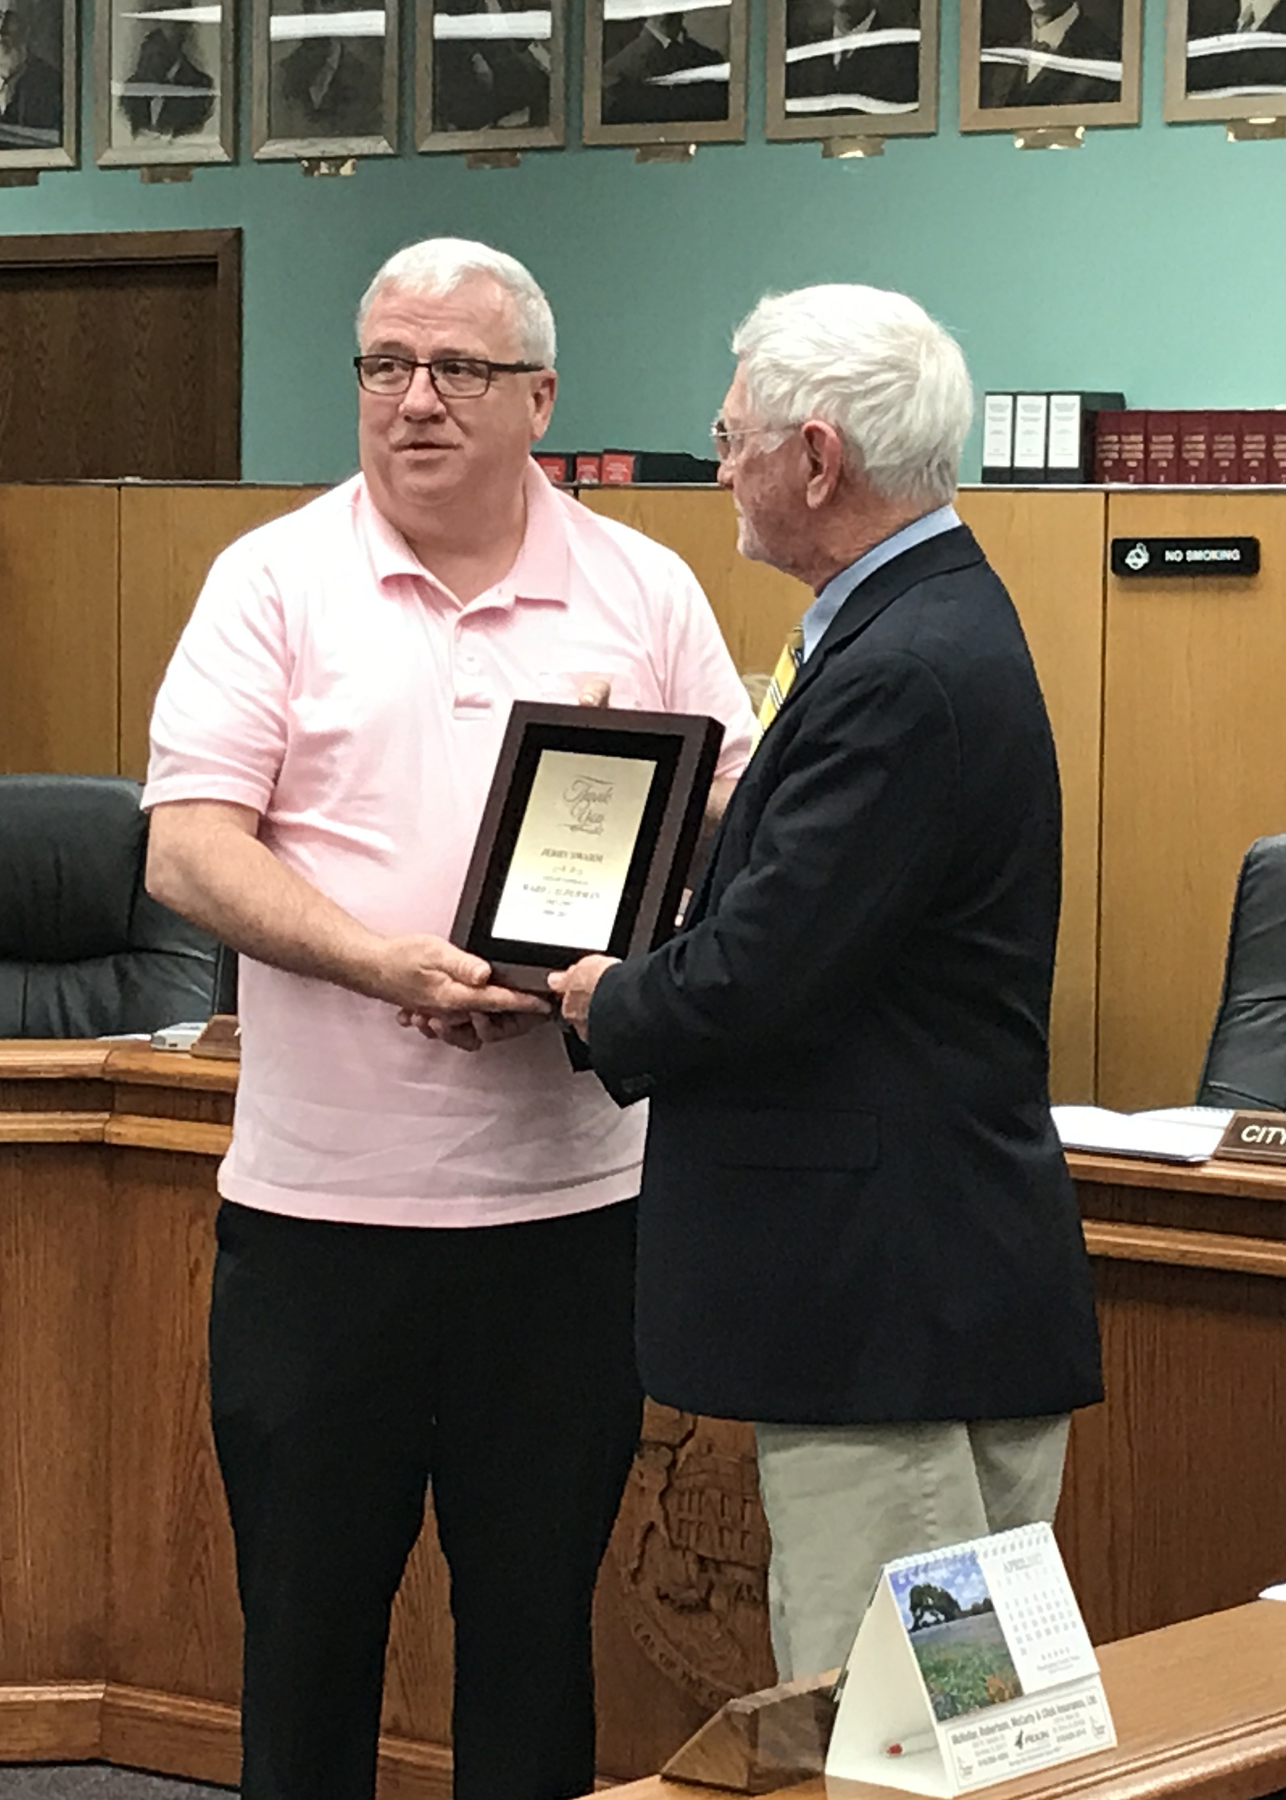 Vandalia Aldermen Jerry Swarm Honored At Council Meeting